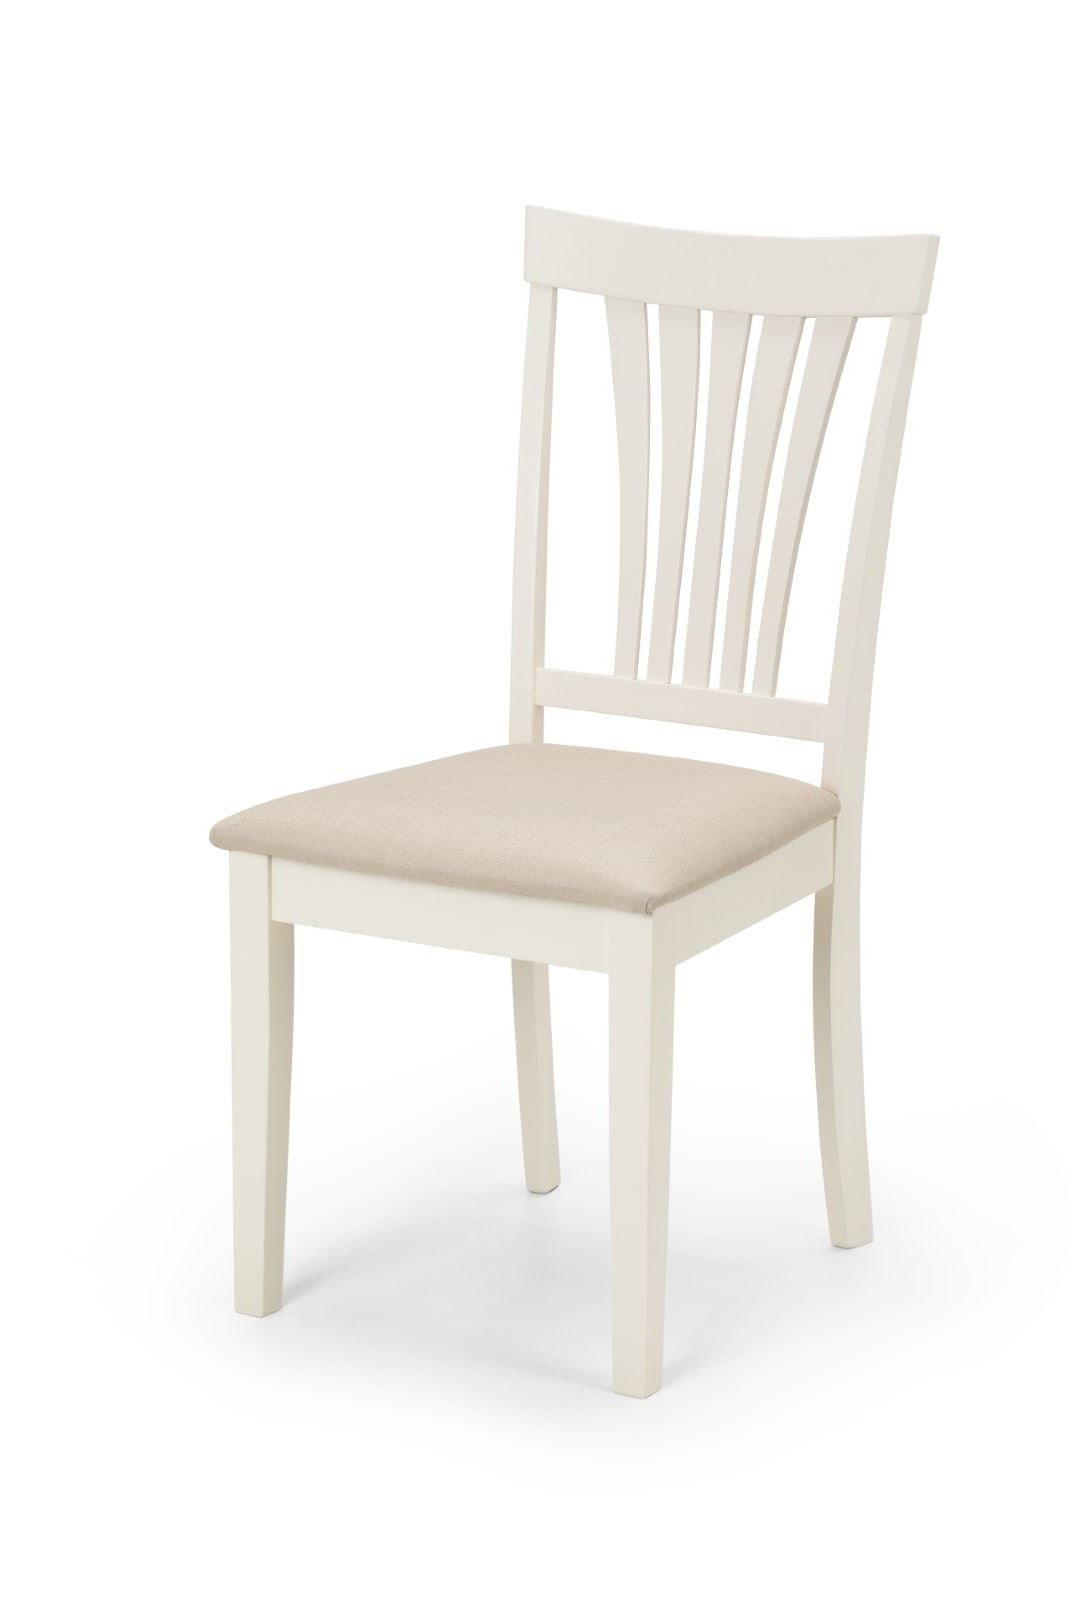 Julian Bowen Stamford 2 x Dining Chair Ivory Off White Solid Wood Faux Sued Seat